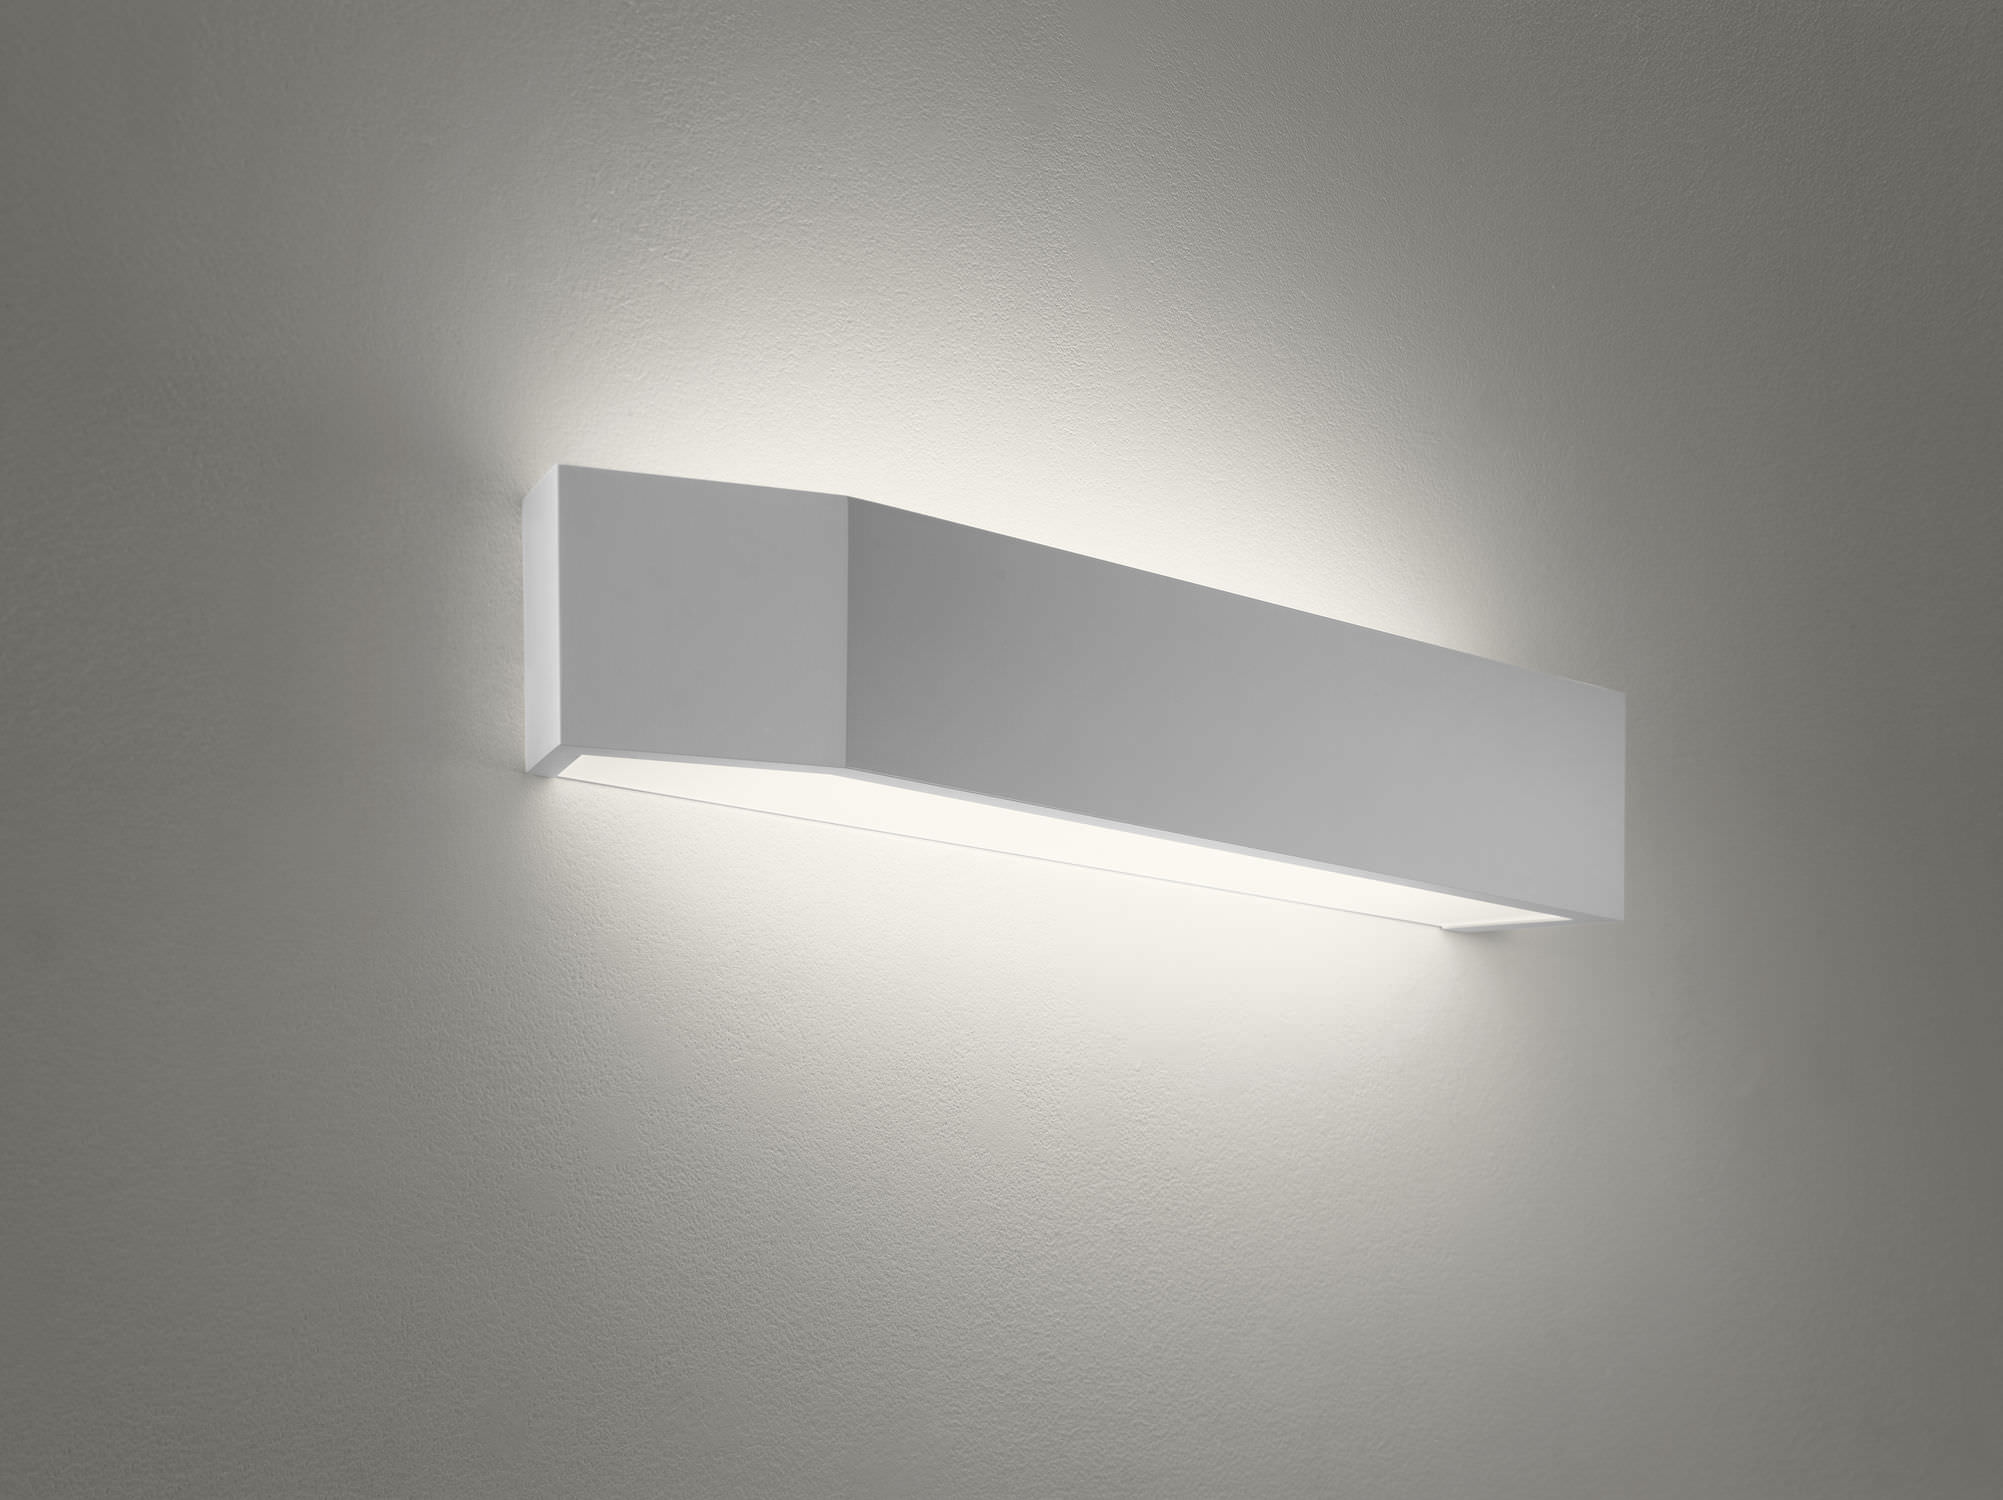 Wall Mounted Fluorescent Lamp : The beauty of Fluorescent wall lights Warisan Lighting